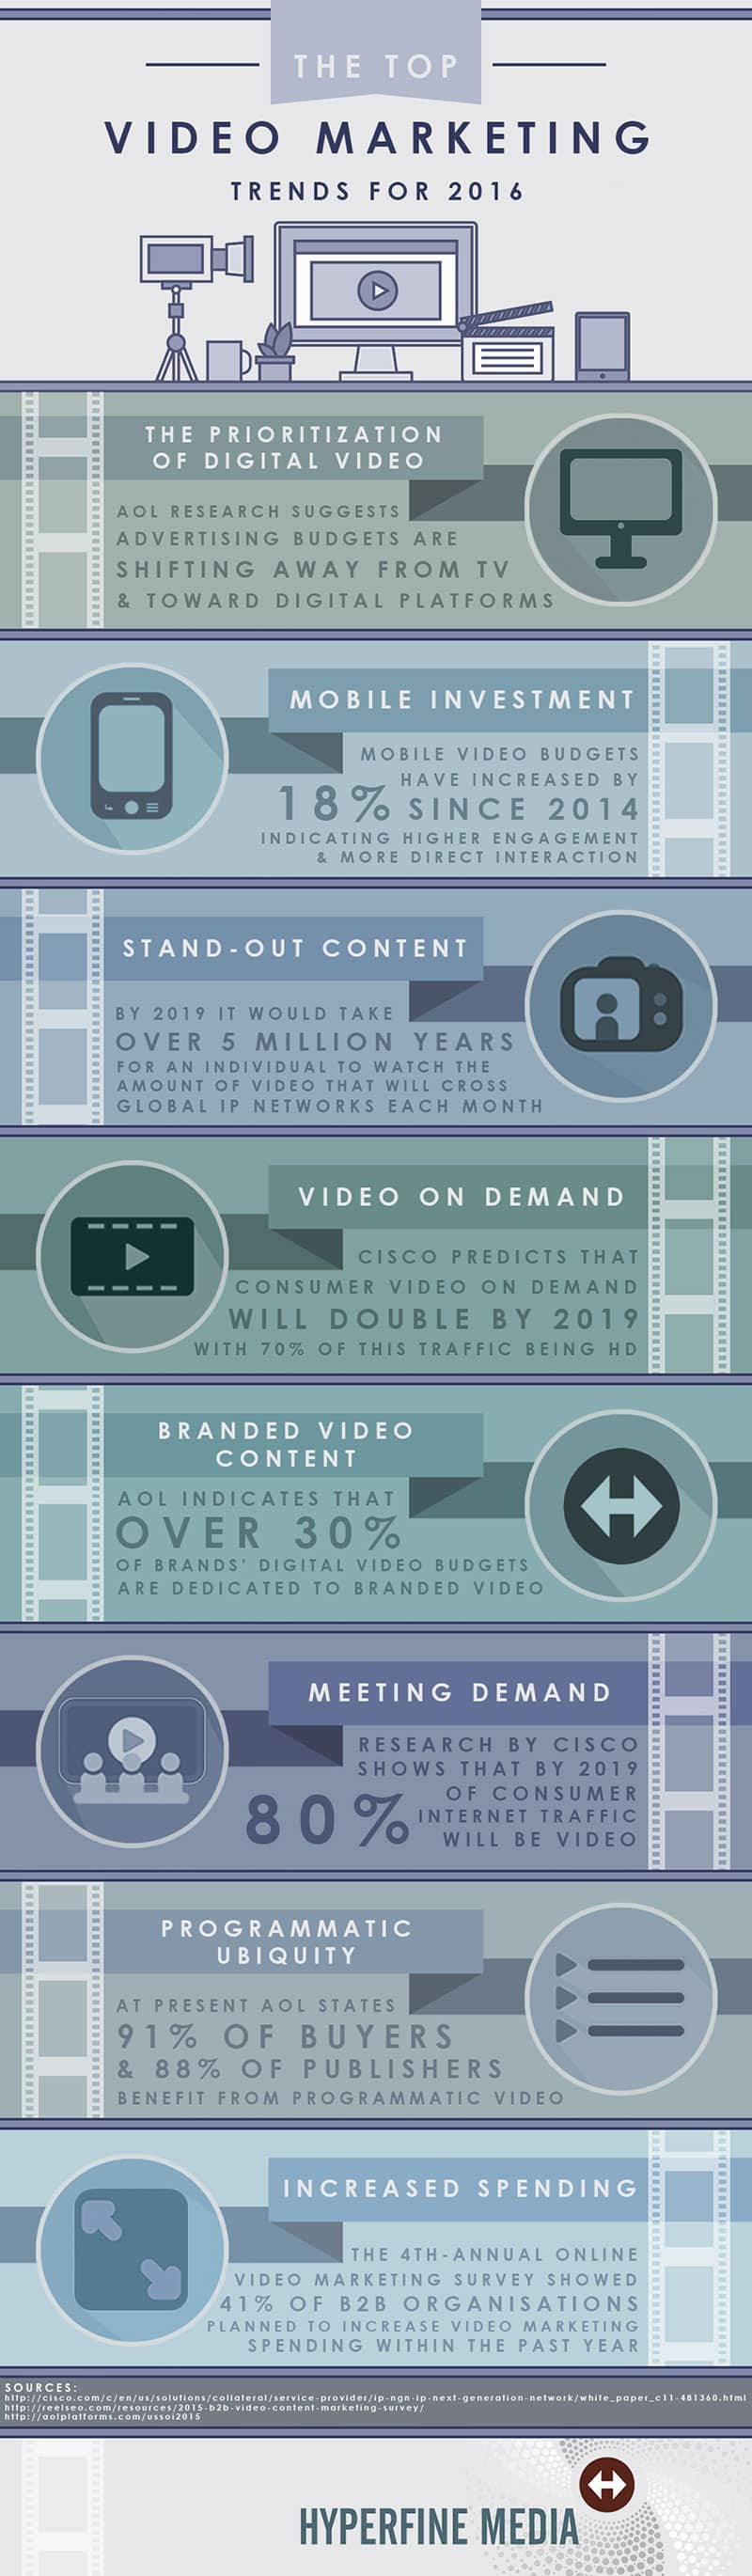 video marketing trends 2016 Infographic